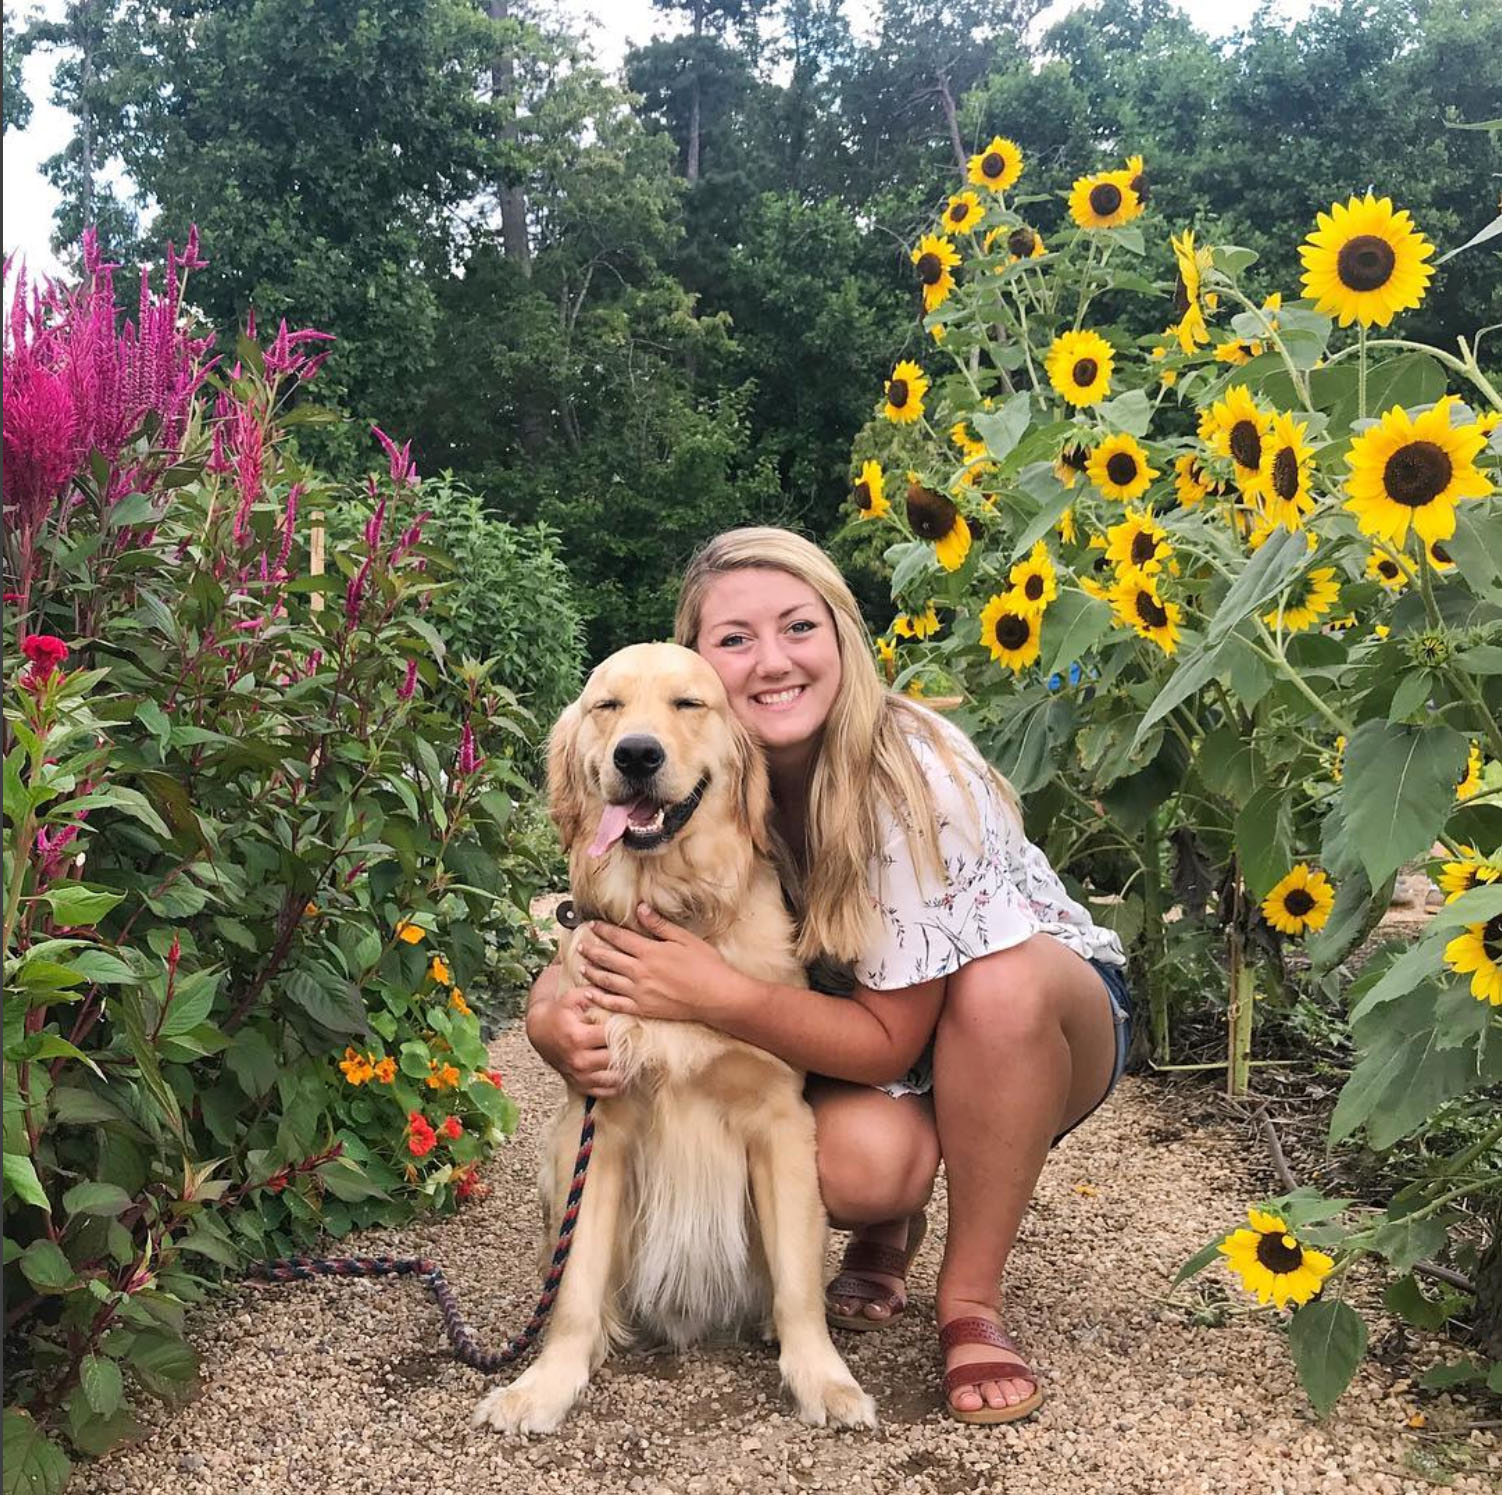 My Pup Oakley: The True TAIL Of A Golden Retriever That Became A Social Media Sensation